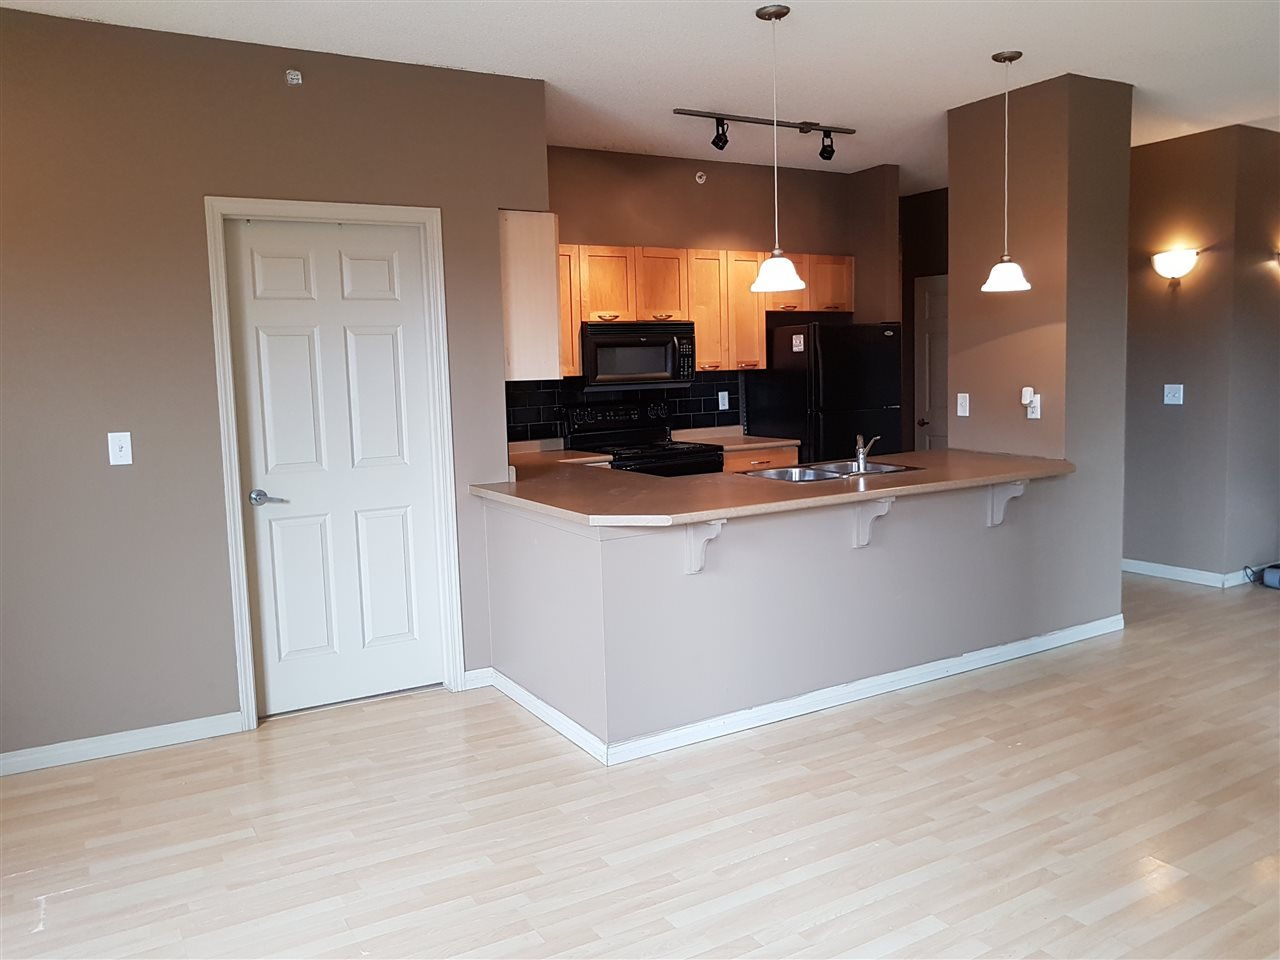 Photo 13: 2-108 4245 139 Avenue NW in Edmonton: Zone 35 Condo for sale : MLS(r) # E4065624